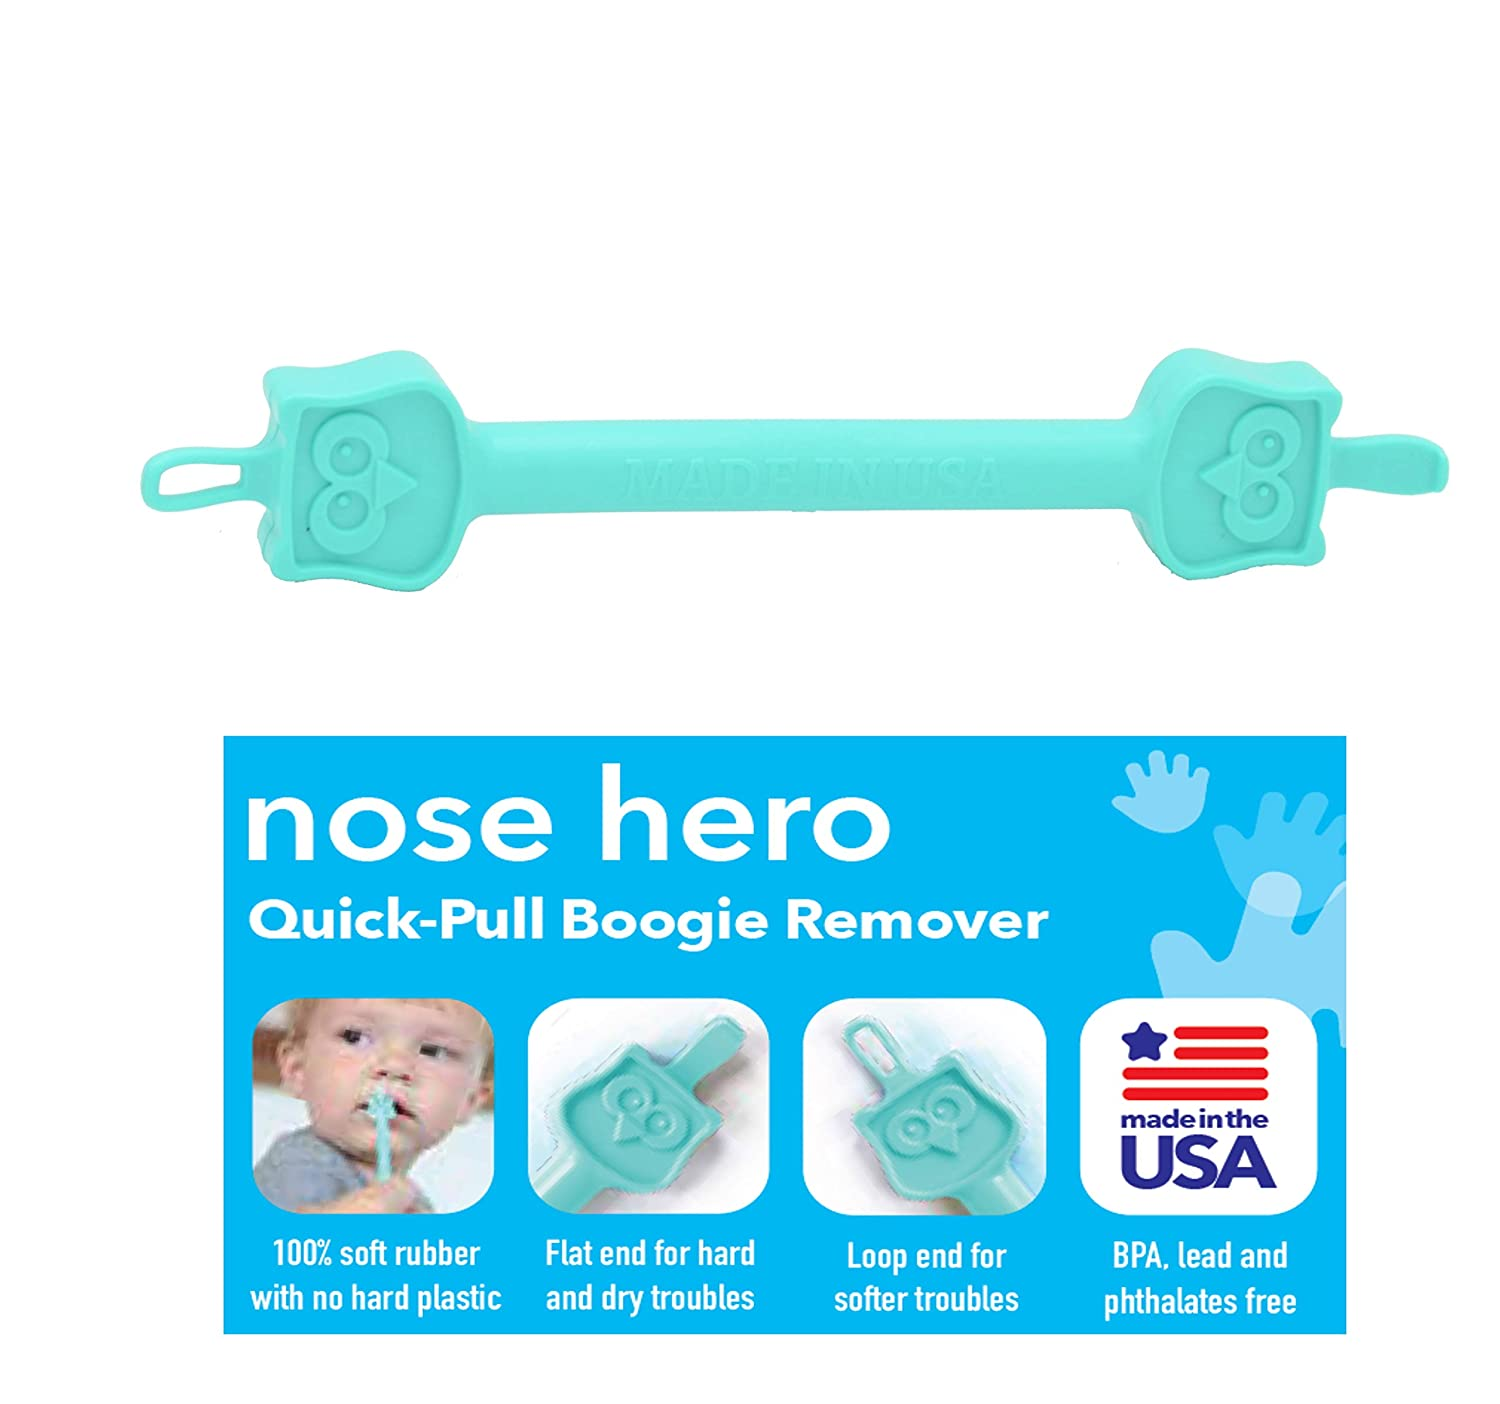 Nose Hero Soft Baby Nose Cleaner Gadget | 100% Flexible Safety Rubber Tips for Infants Ears and Nose Relief | Made in USA | Essential Baby Shower Registry Gift | Nasal Booger Remover and Snot Picker